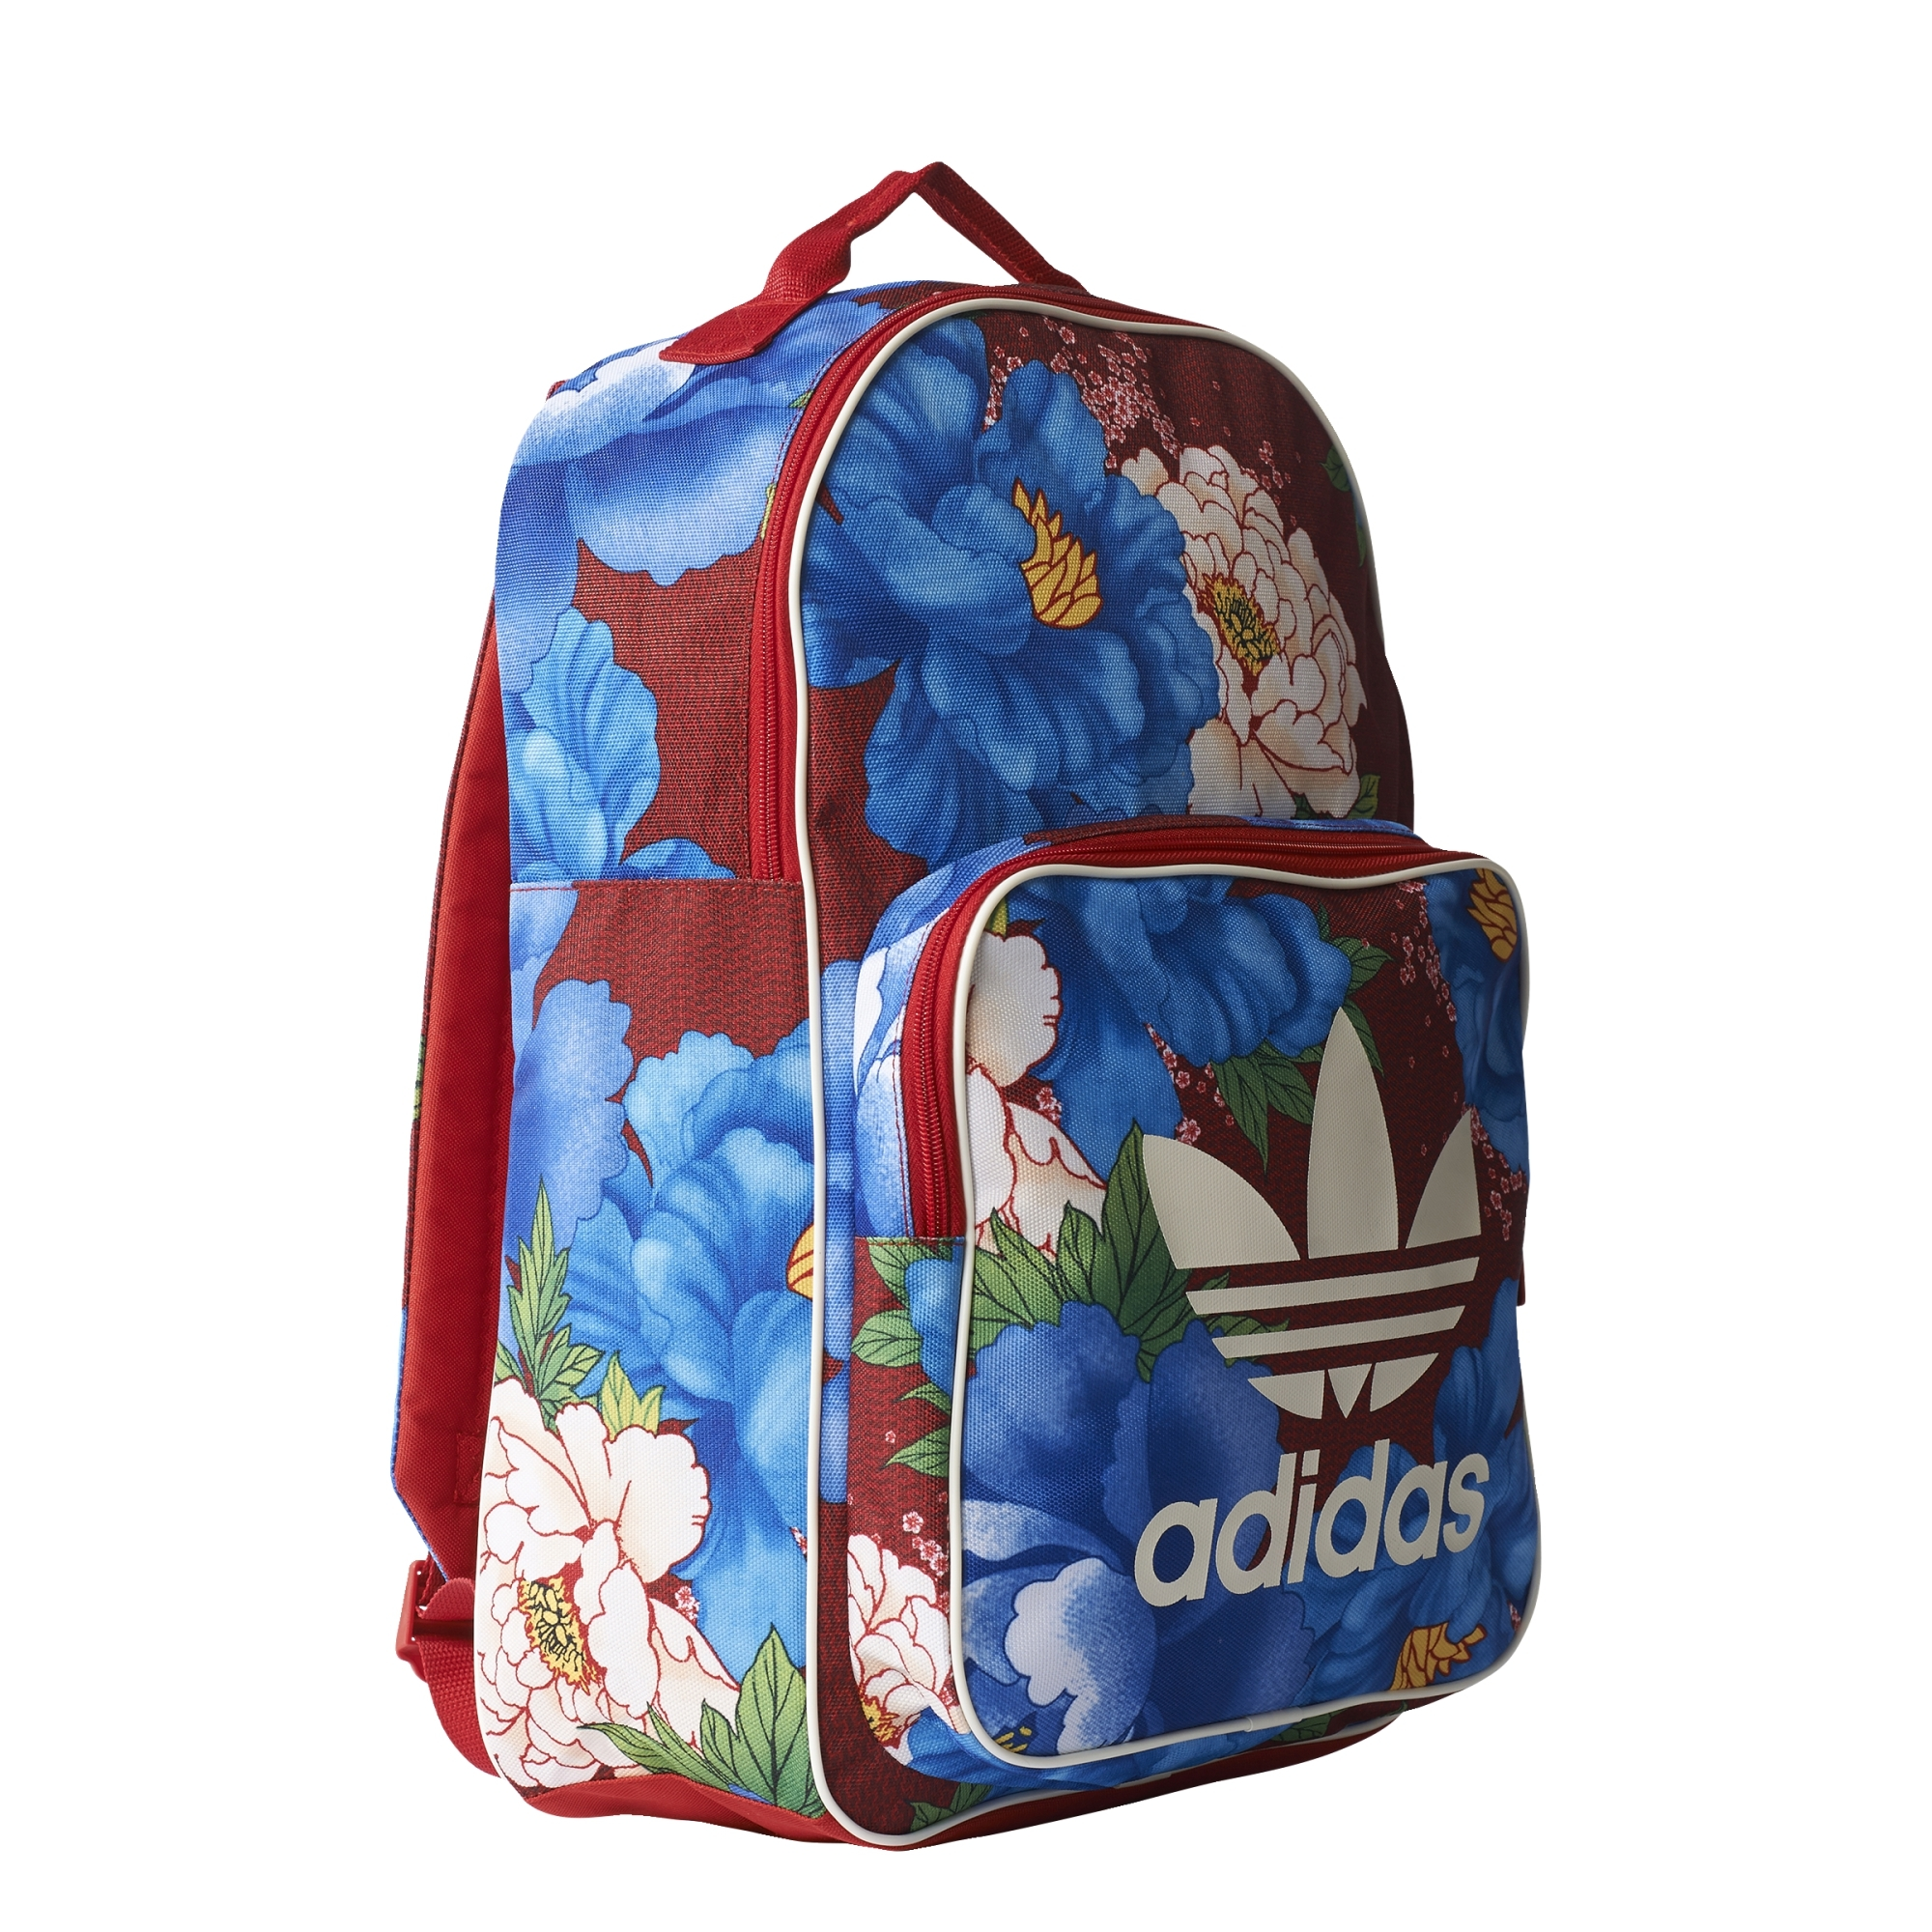 cheap for discount b8925 38938 Adidas Originals Farm Classic Back Pack